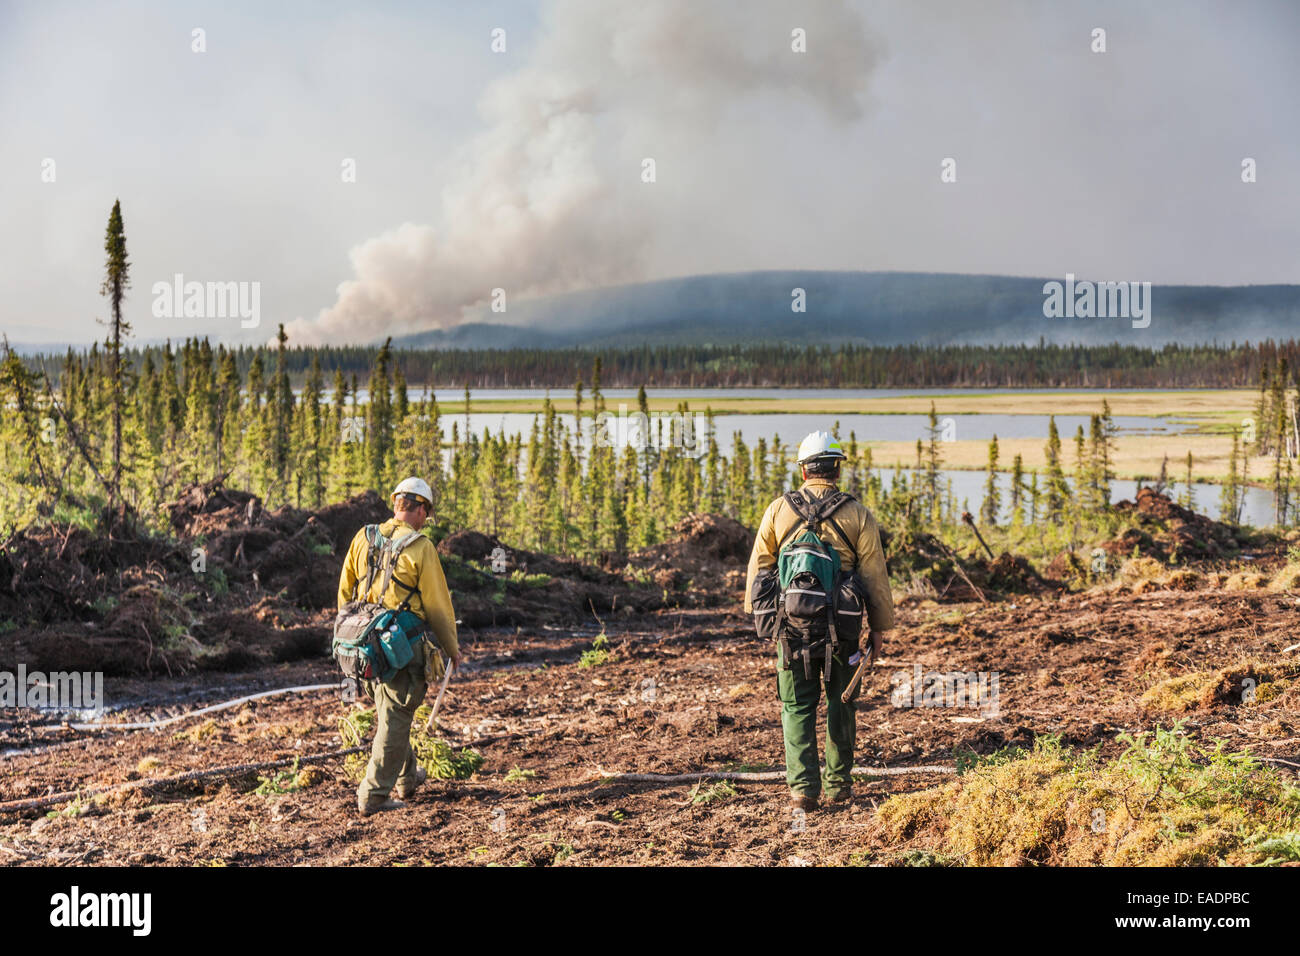 Preparations for a controlled burn at the Eagle Trail forest fire near Tok, Alaska, Interior Alaska - Stock Image